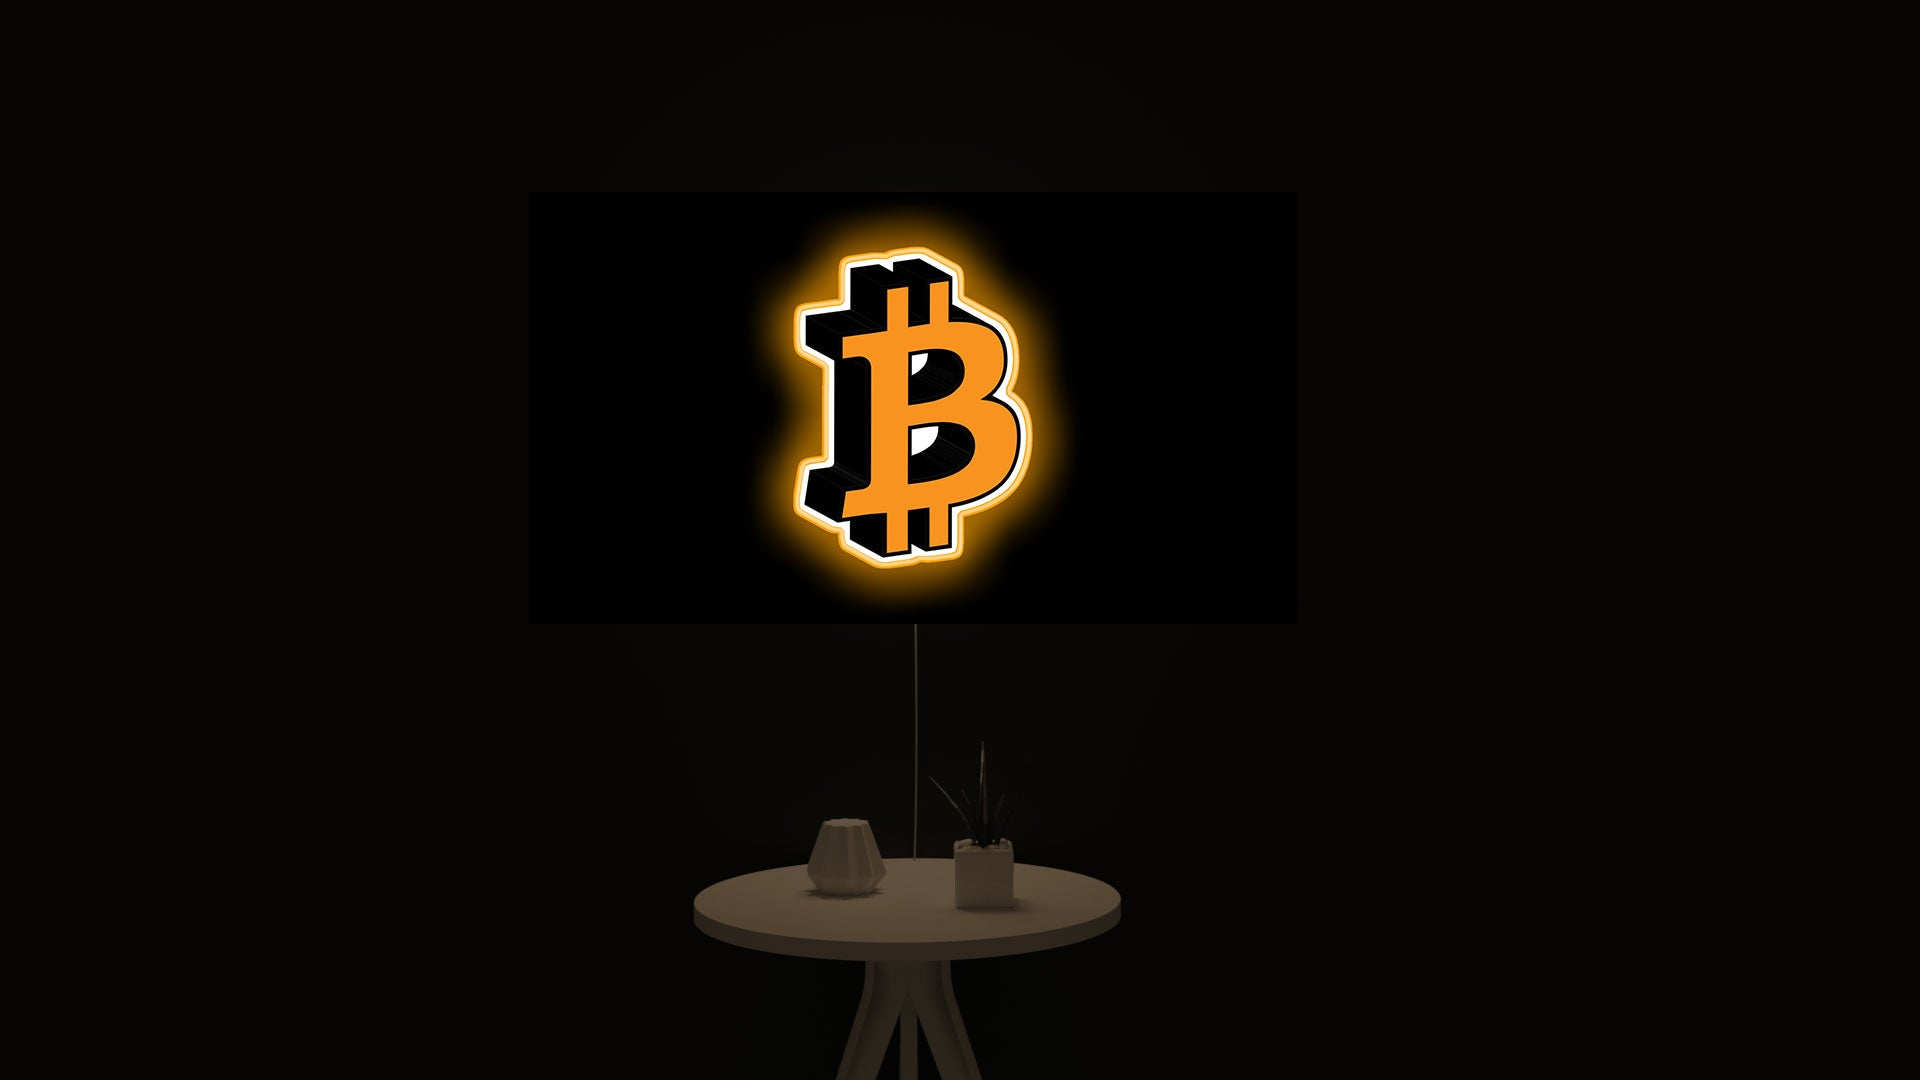 Bitcoin cryptocurrency logo icon gift led light sign